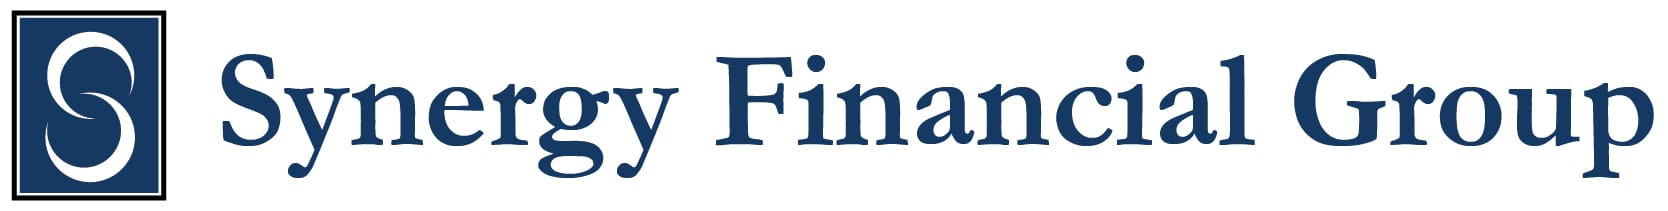 Synergy Financial Group Retina Logo